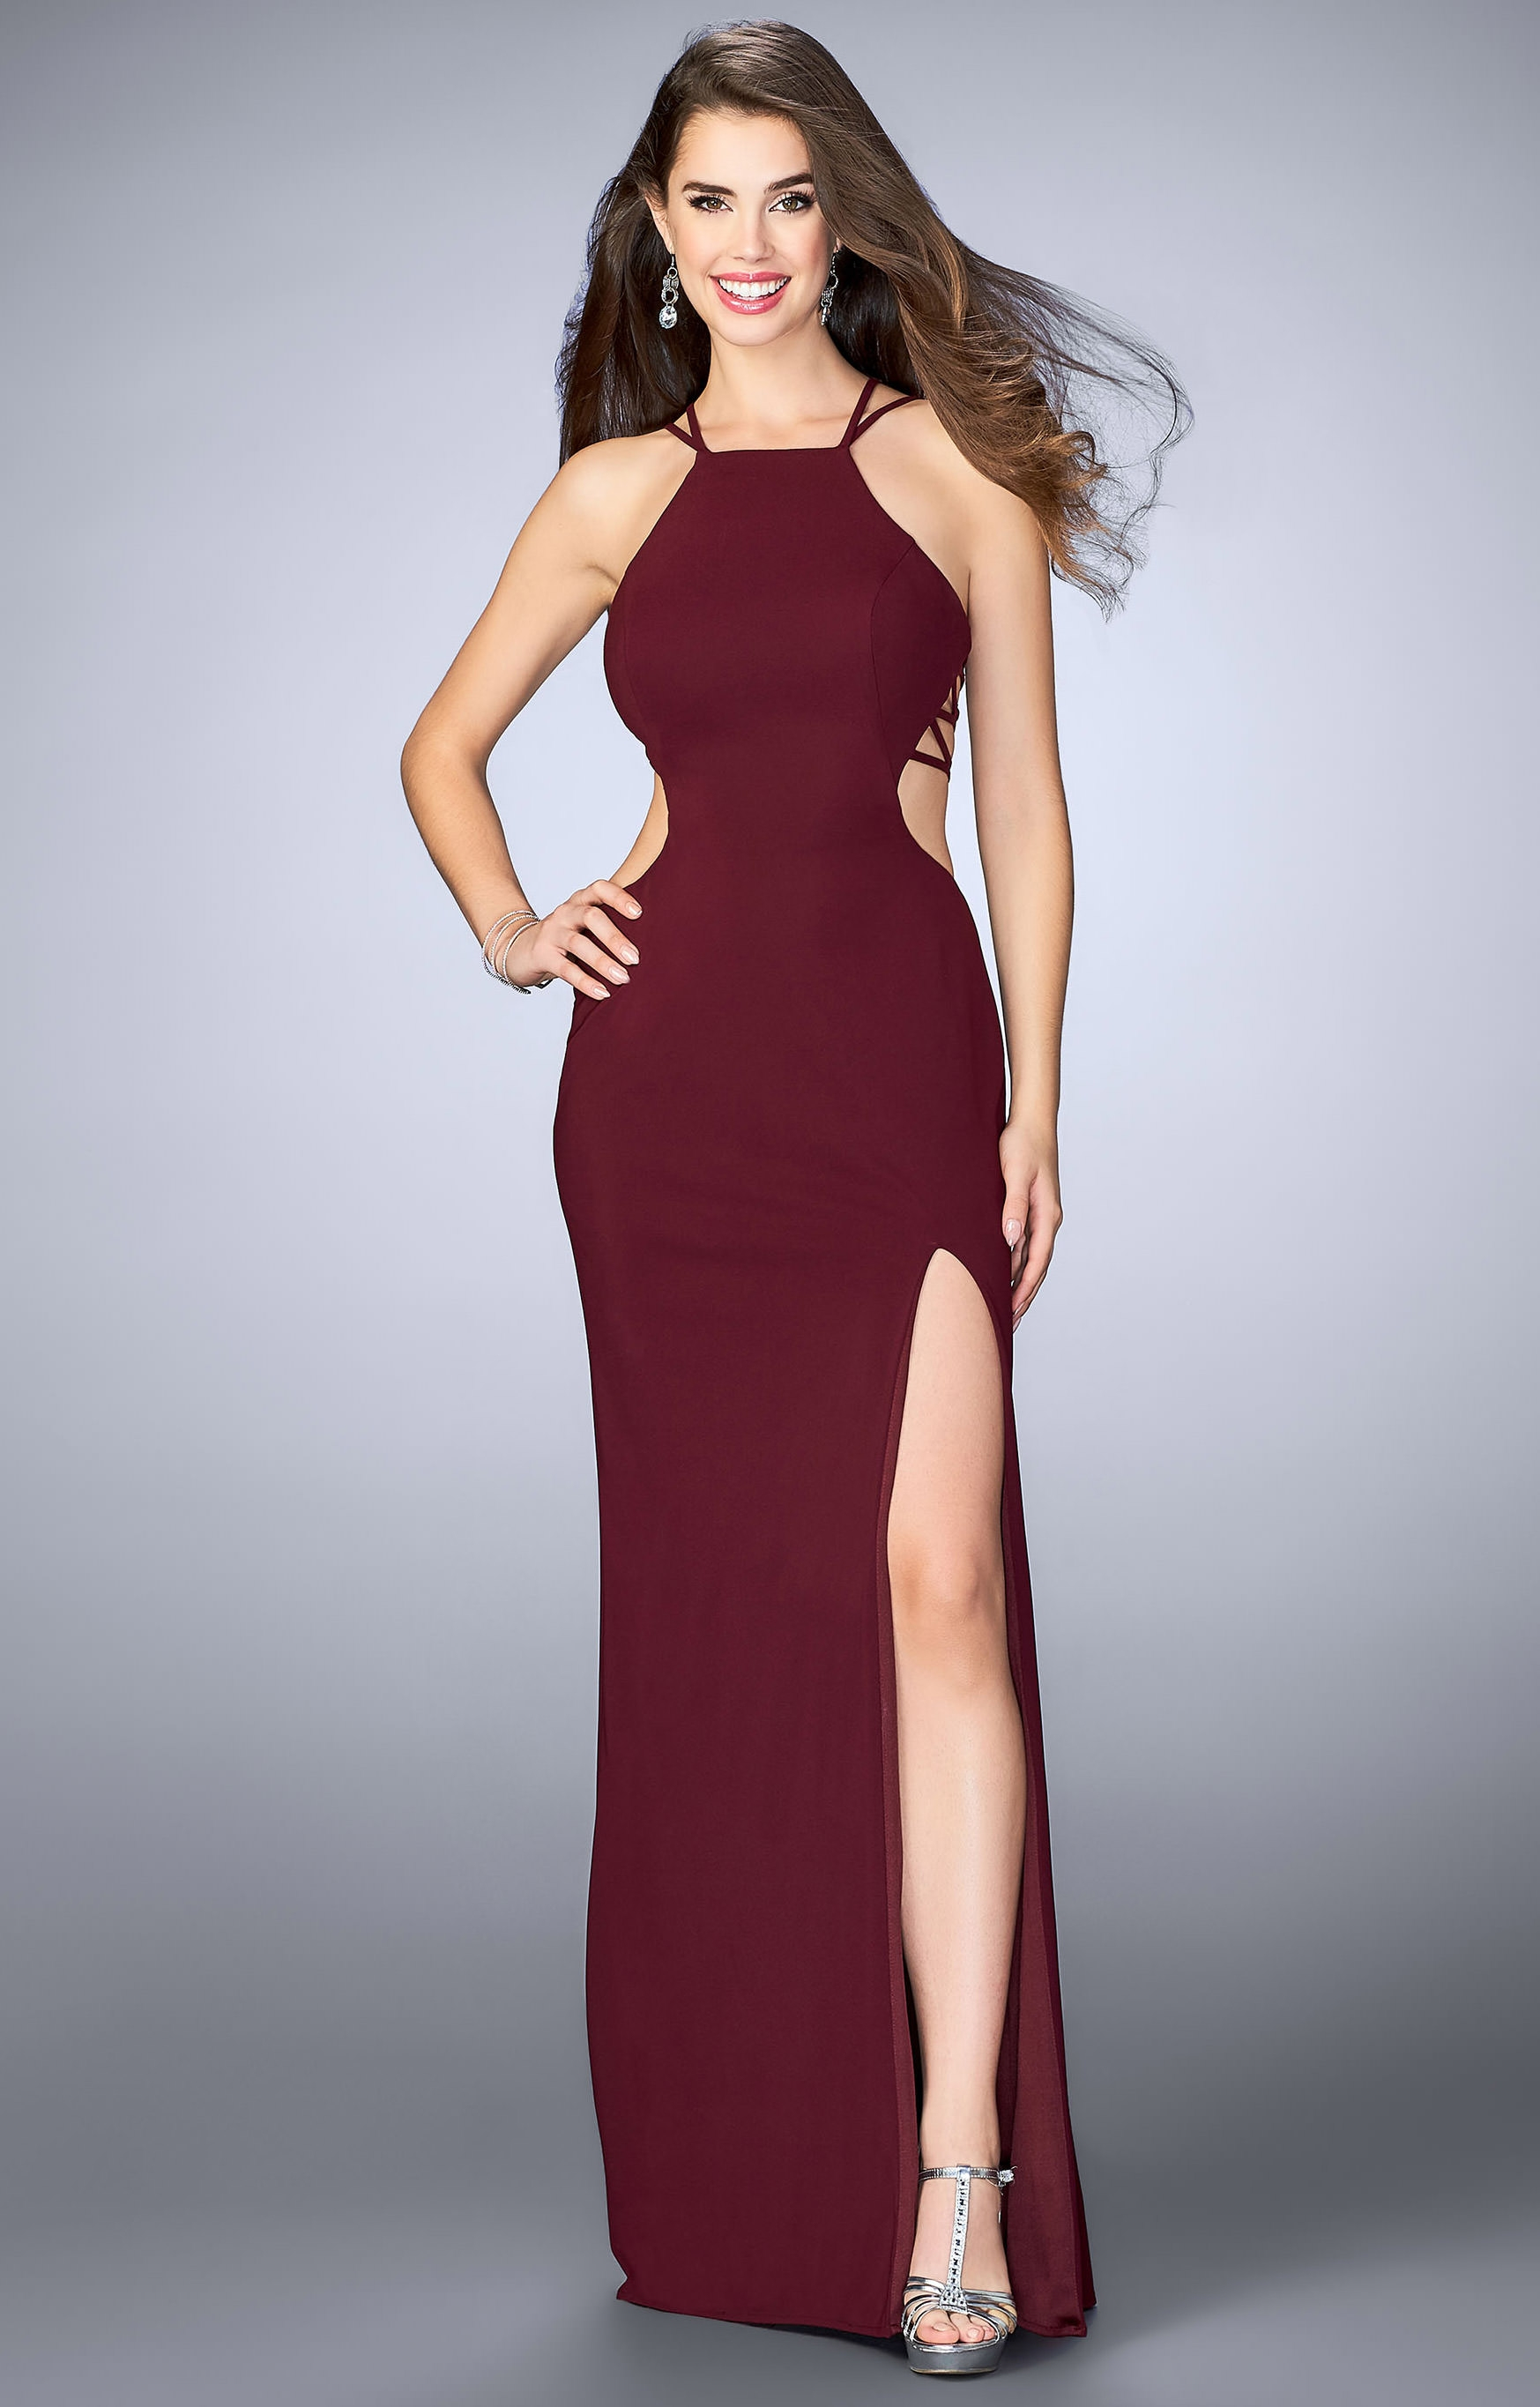 La Femme 24443 - Jersey Knit Halter Top Dress Prom Dress